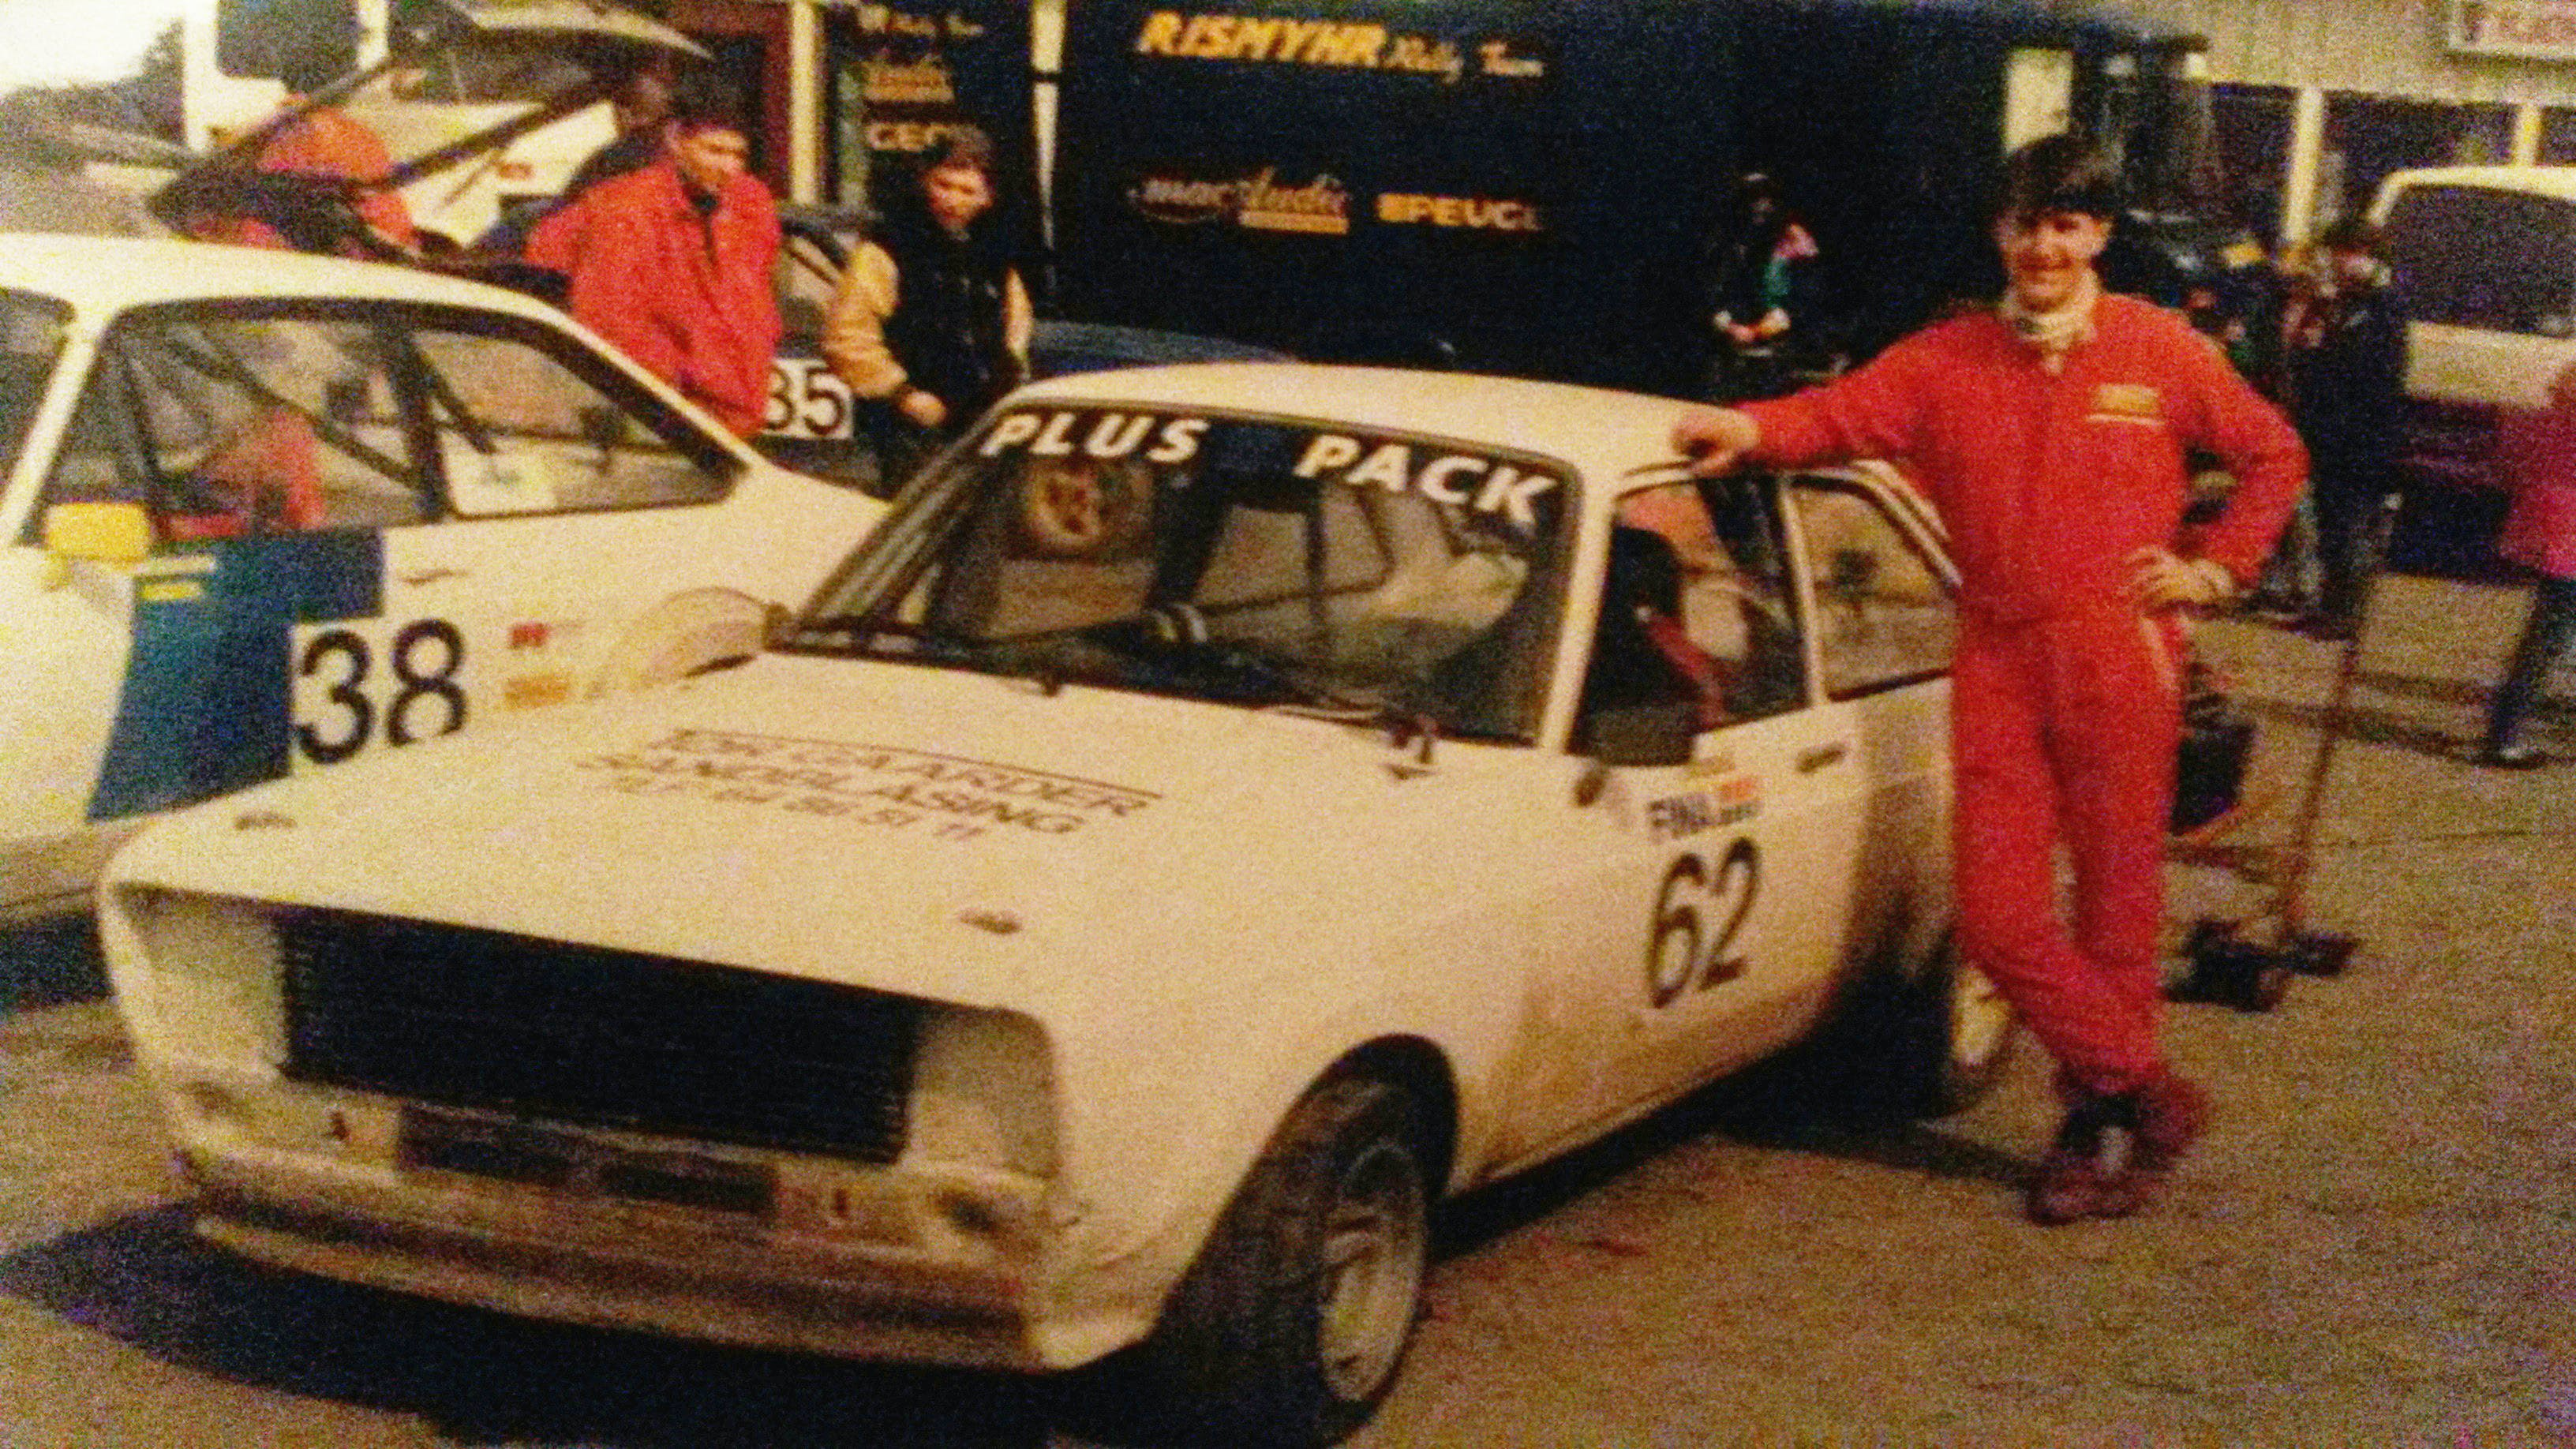 Fredric's father as grassroots rallycross driver